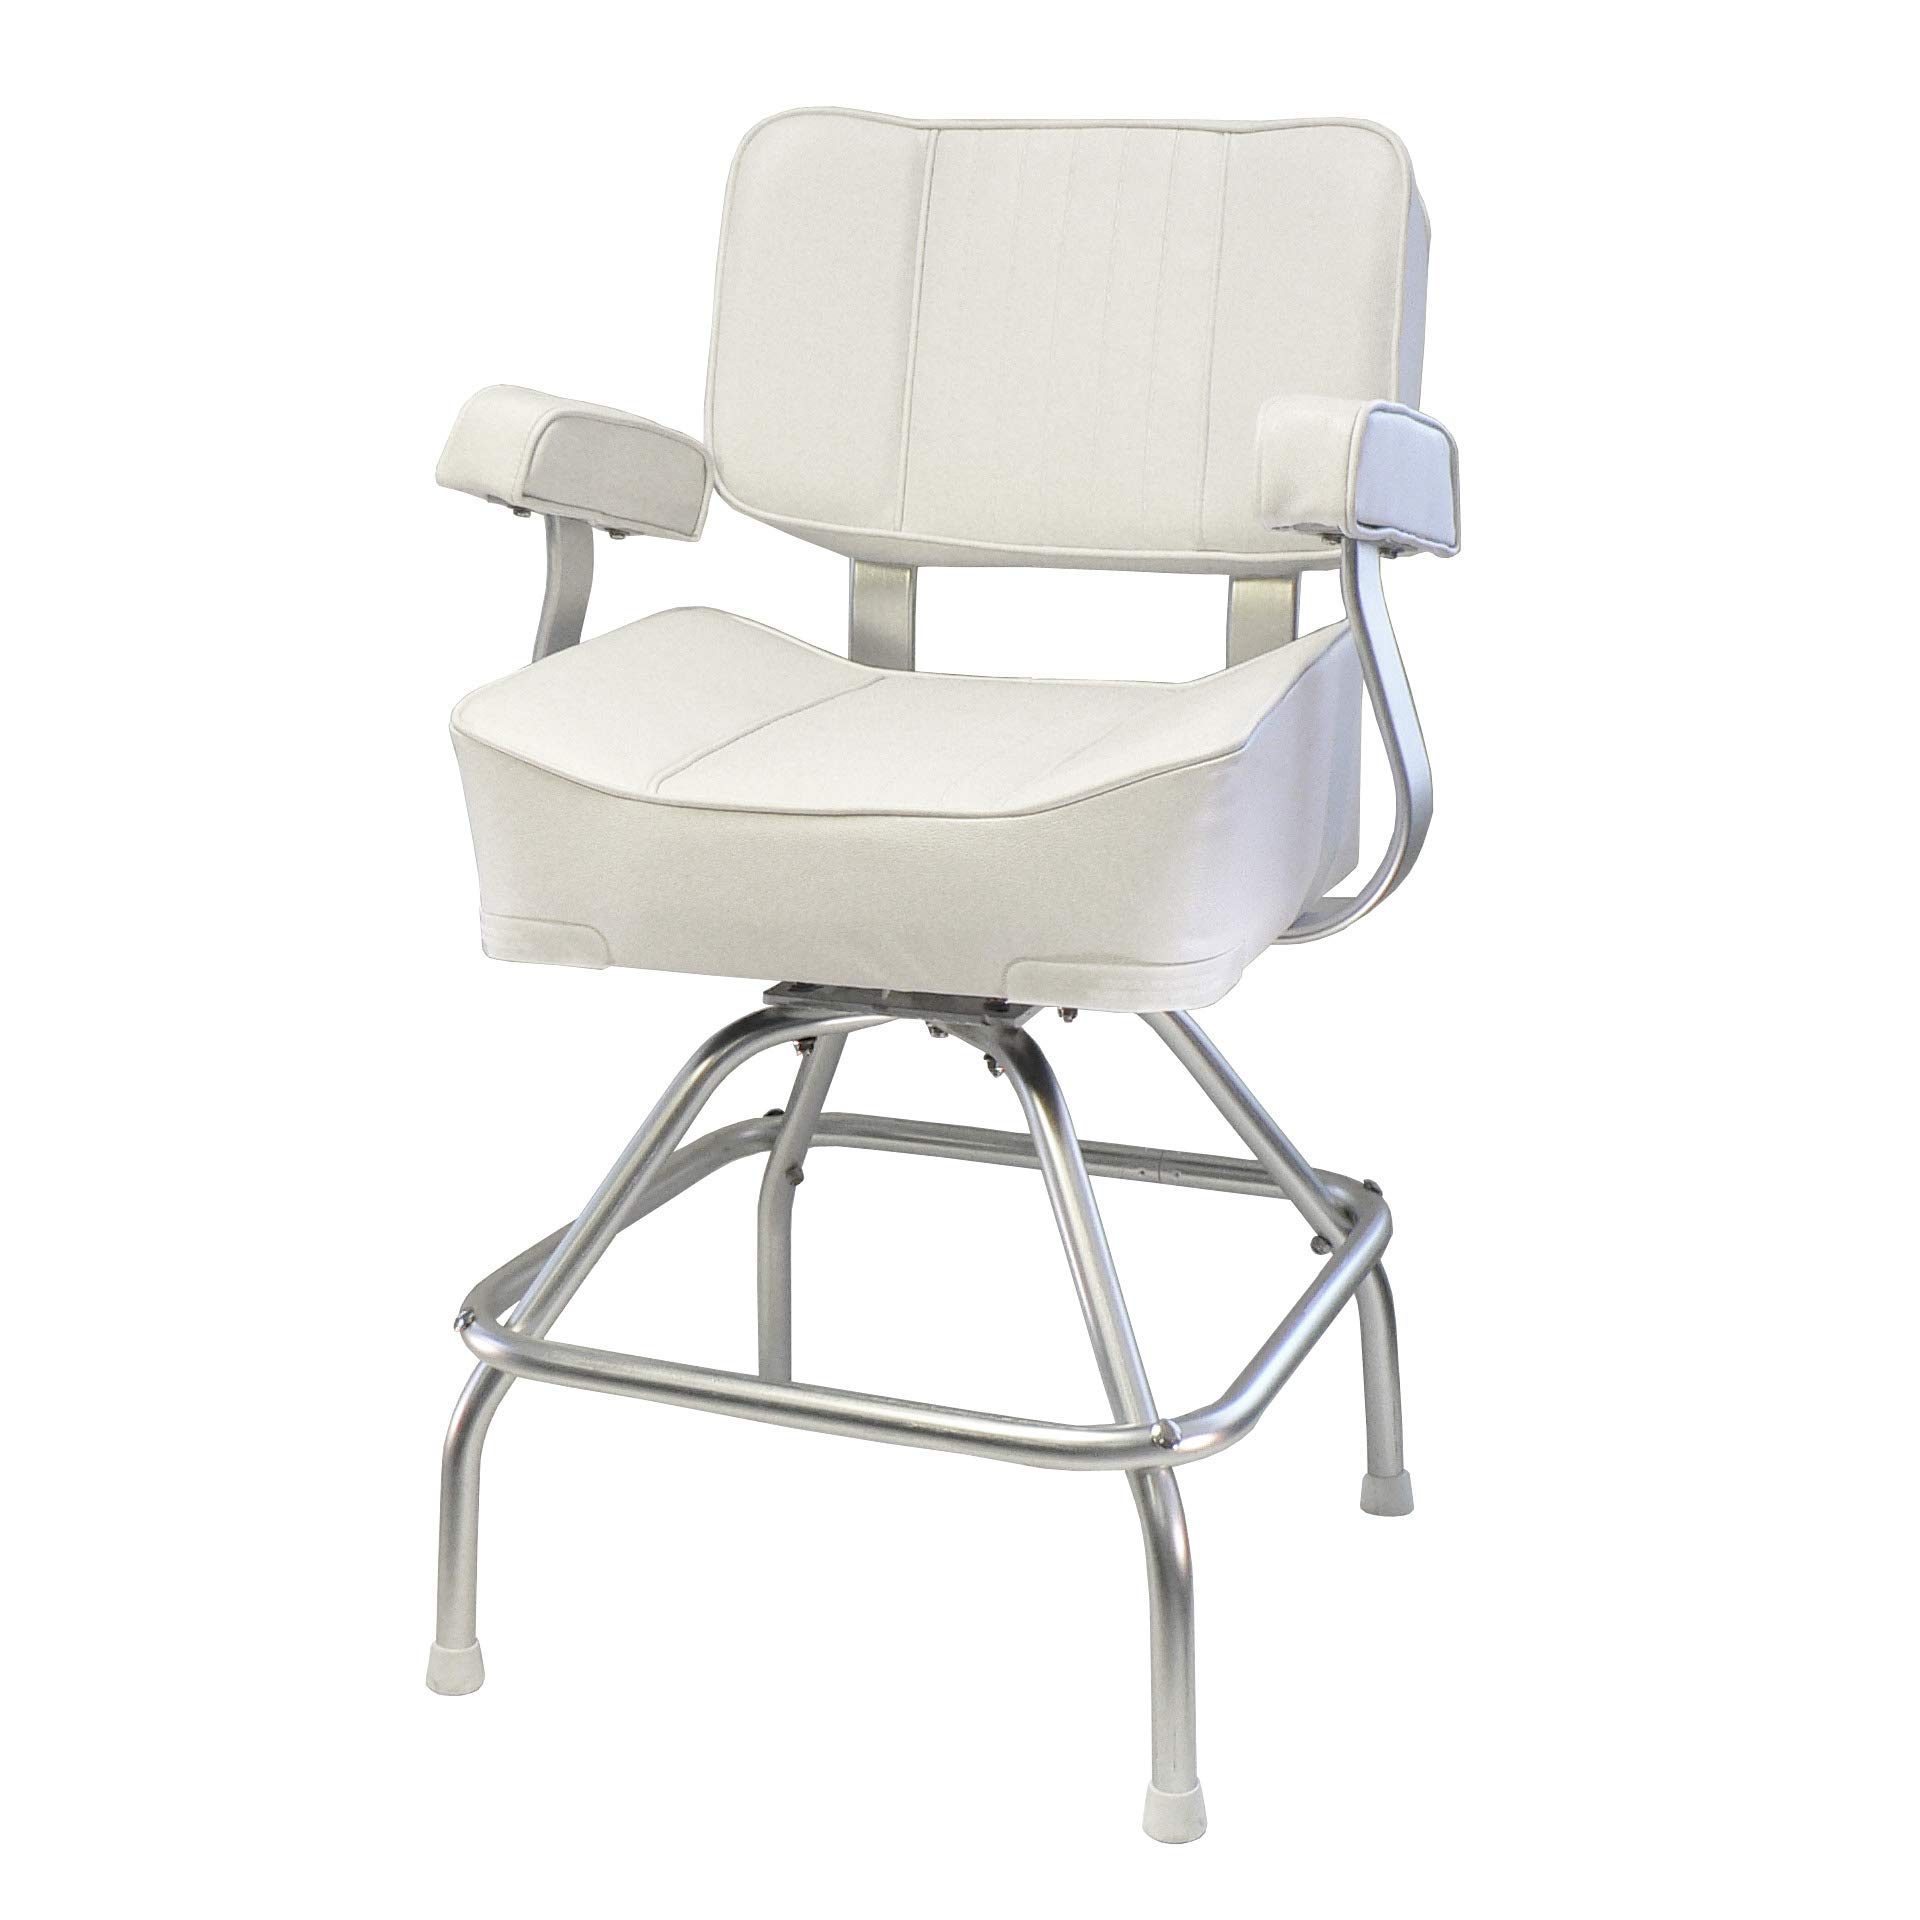 Springfield Deluxe Chair Package Stand